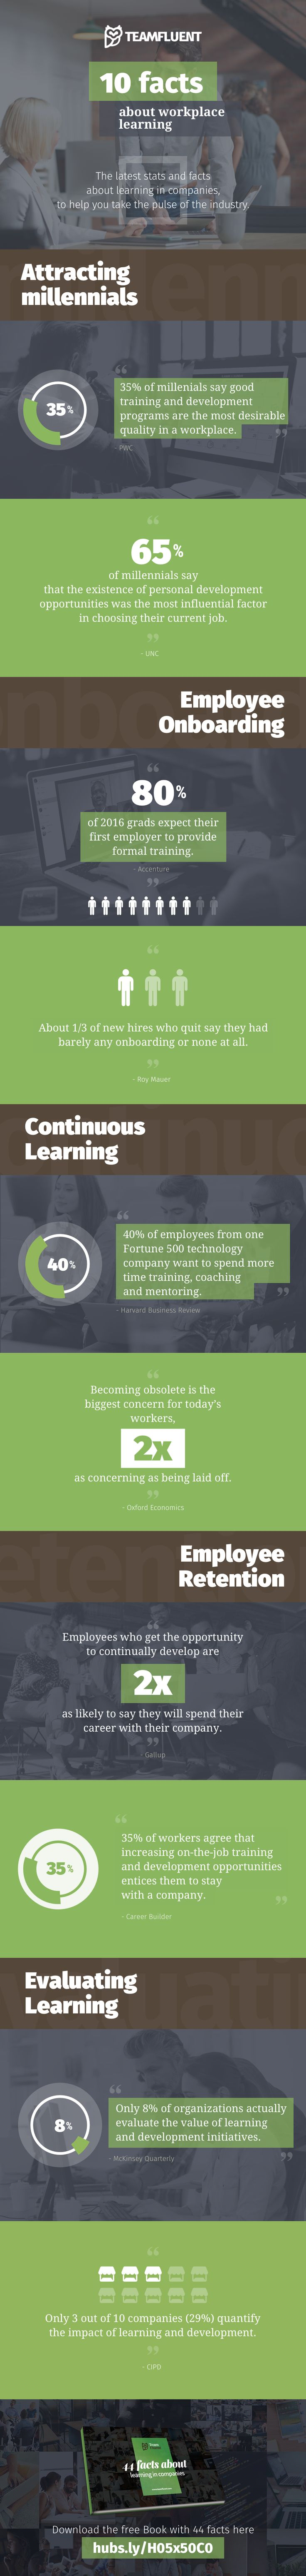 optimal resume login%0A  Infographic  Quick Facts About Organizational Learning